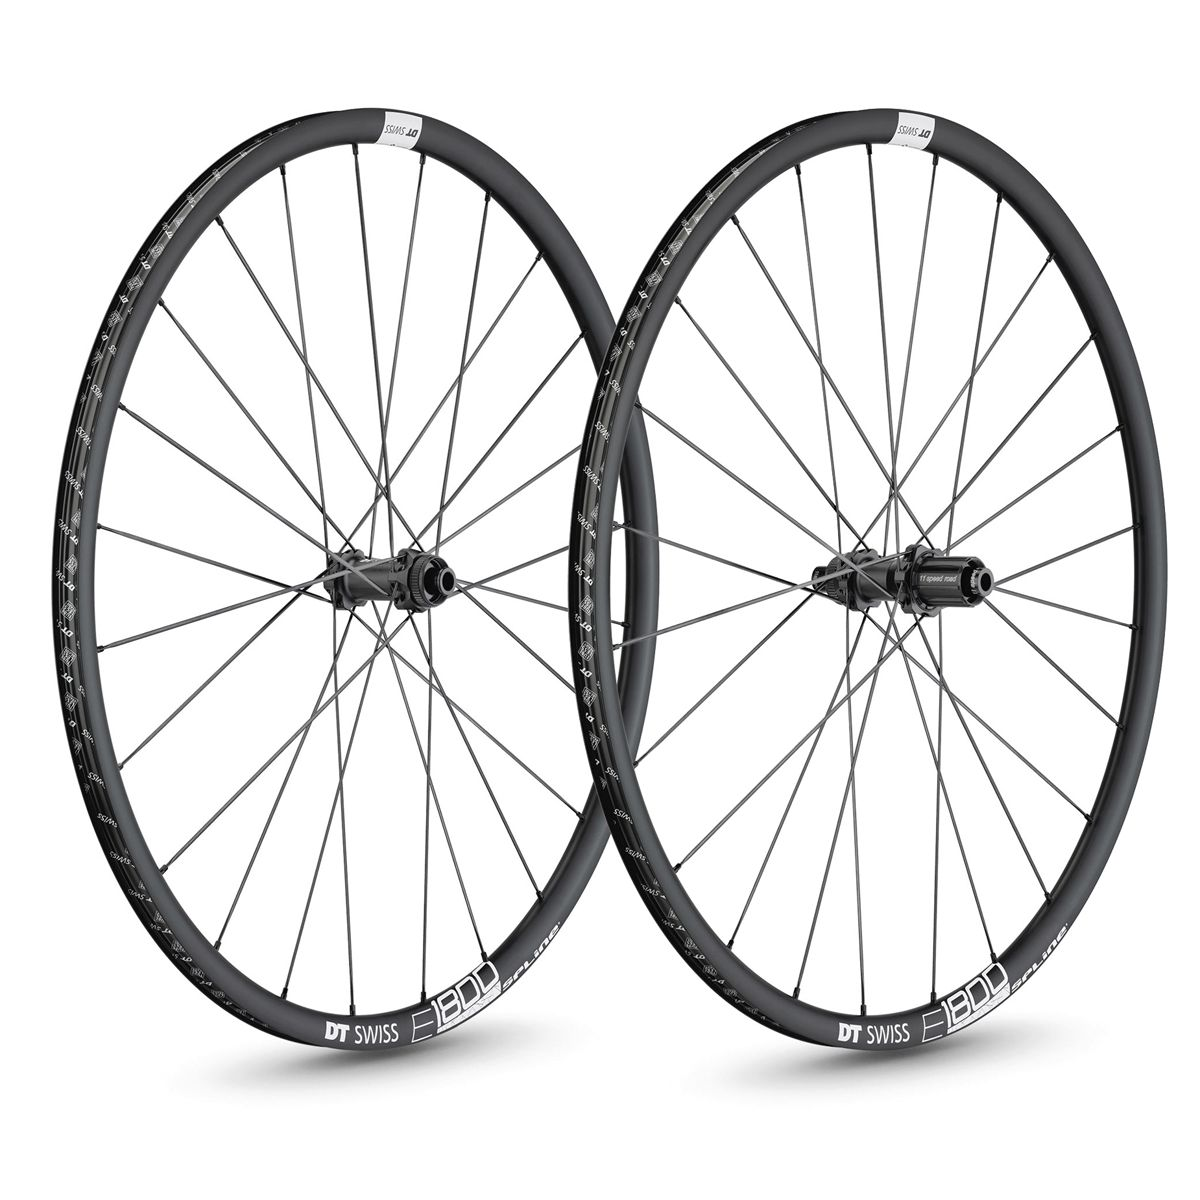 E 1800 Spline 23 db road wheels 28